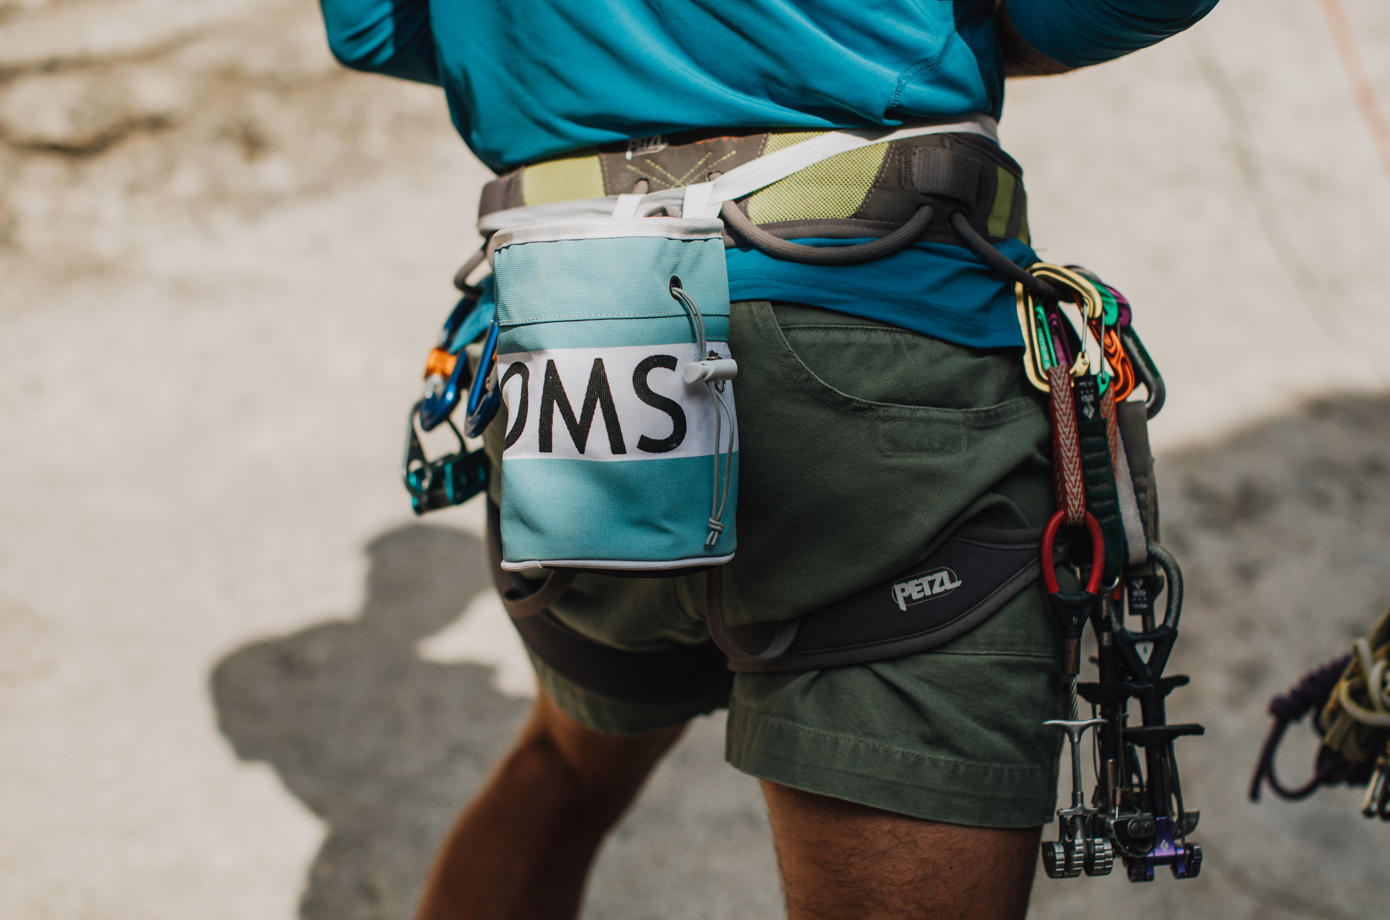 So iLL x TOMS Chalk Bag Part of 1Climb's Indiegogo Campaign.